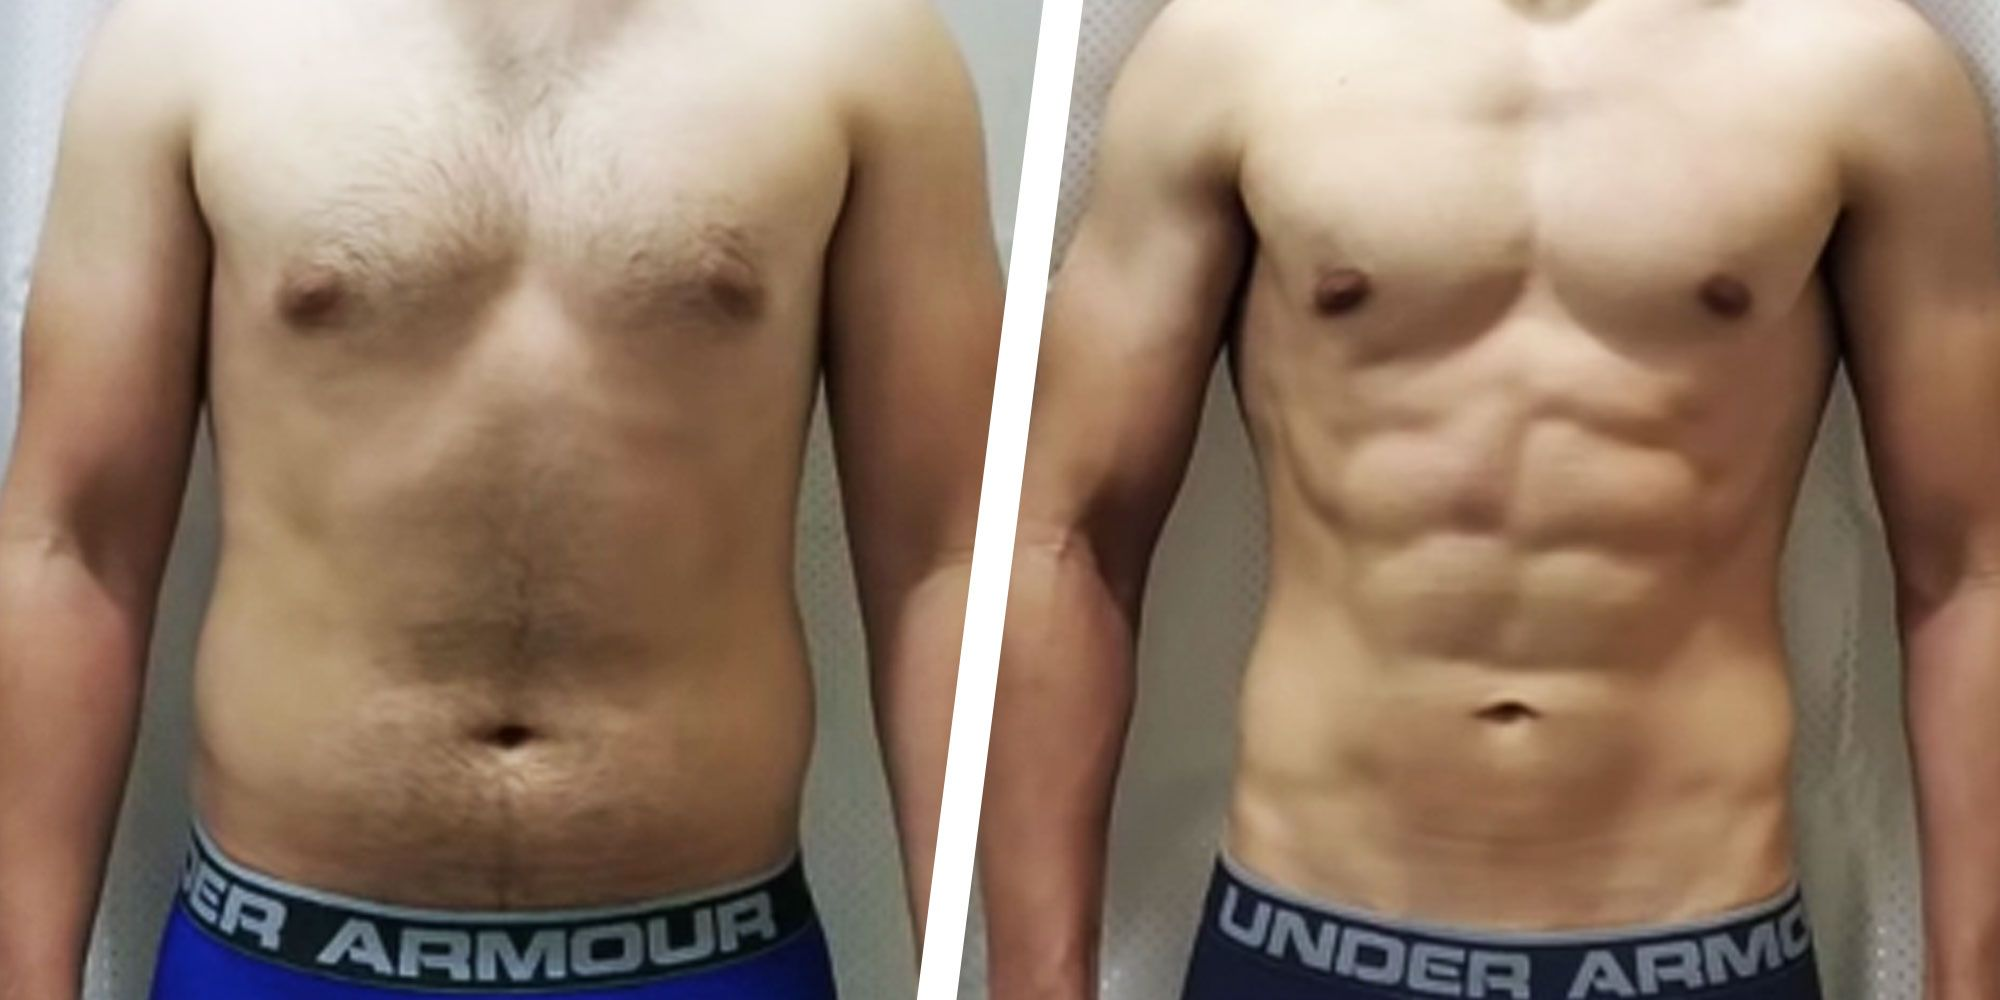 How This Guy Lost 25 Pounds and Got Shredded in 6 Months